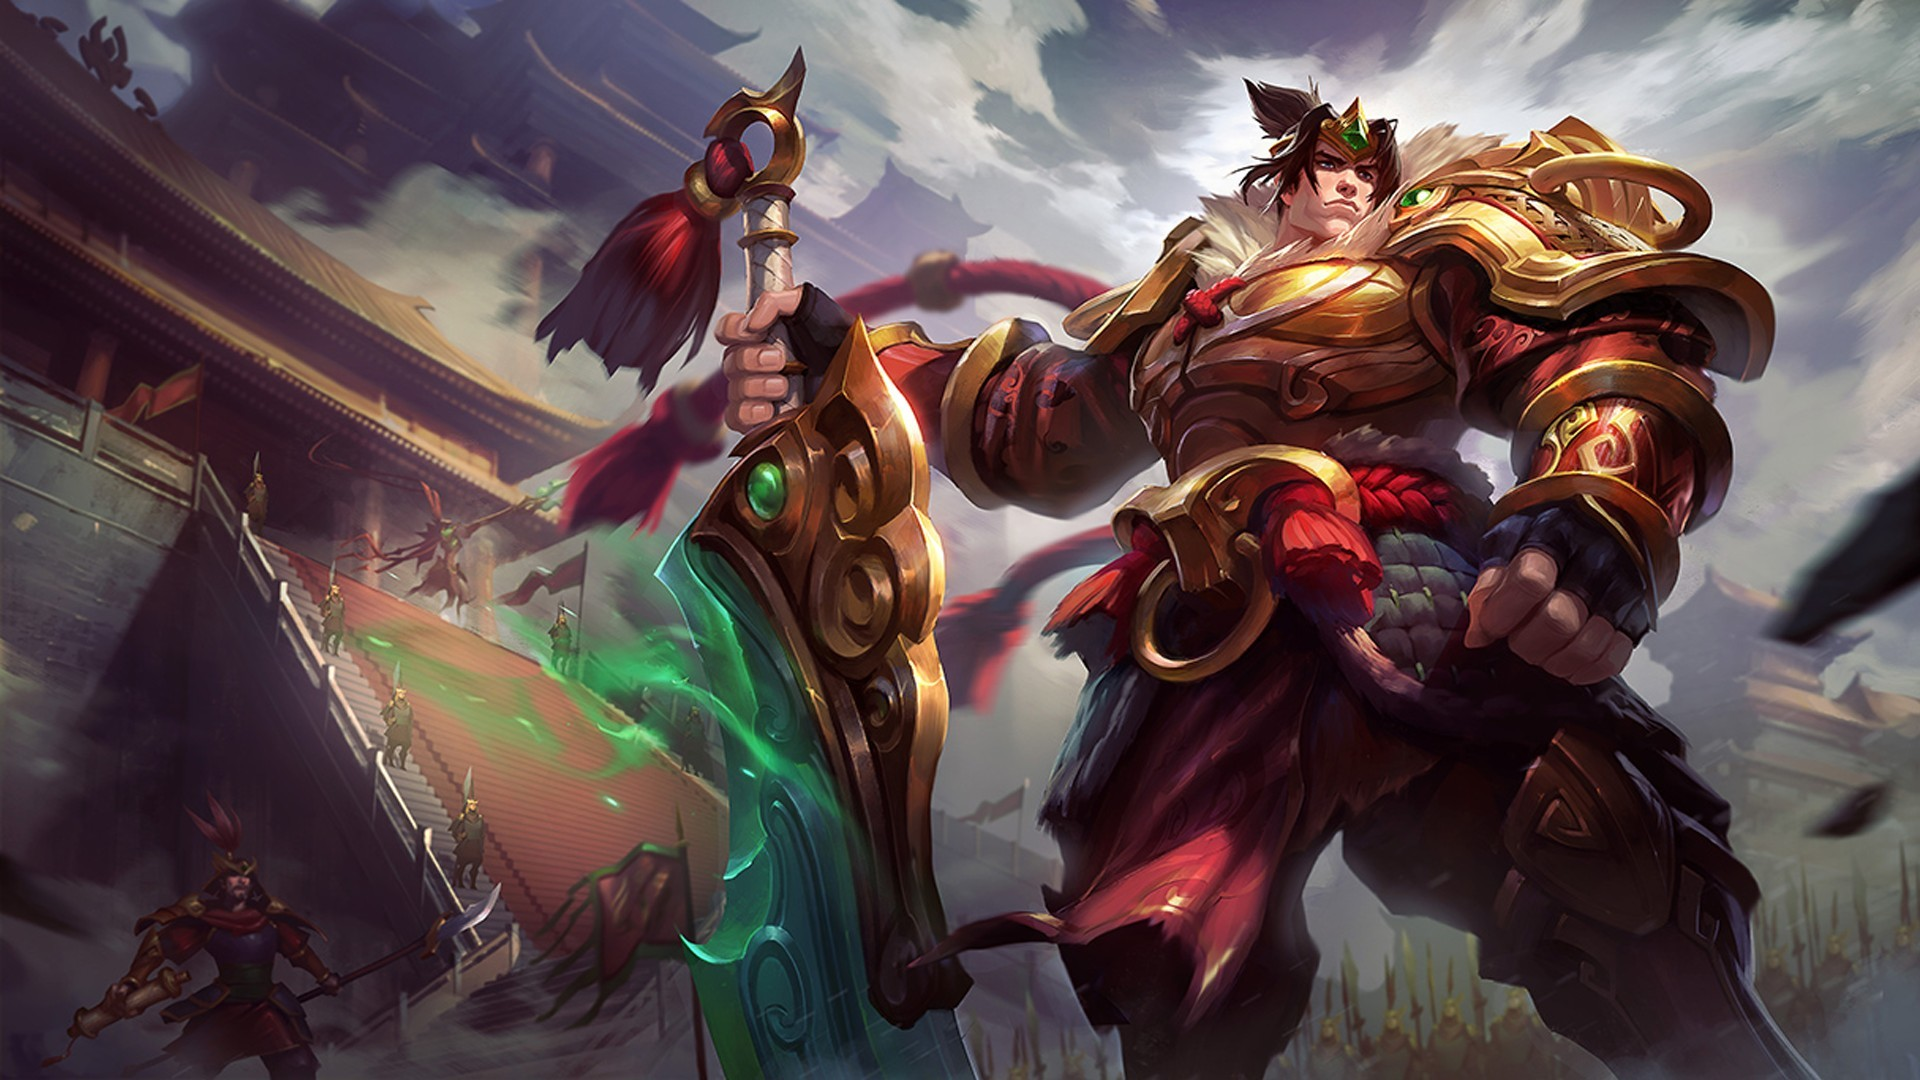 Xin zhao wallpaper 76 images 1920x1080 world of warcraft devils advocate wallpaper voltagebd Image collections